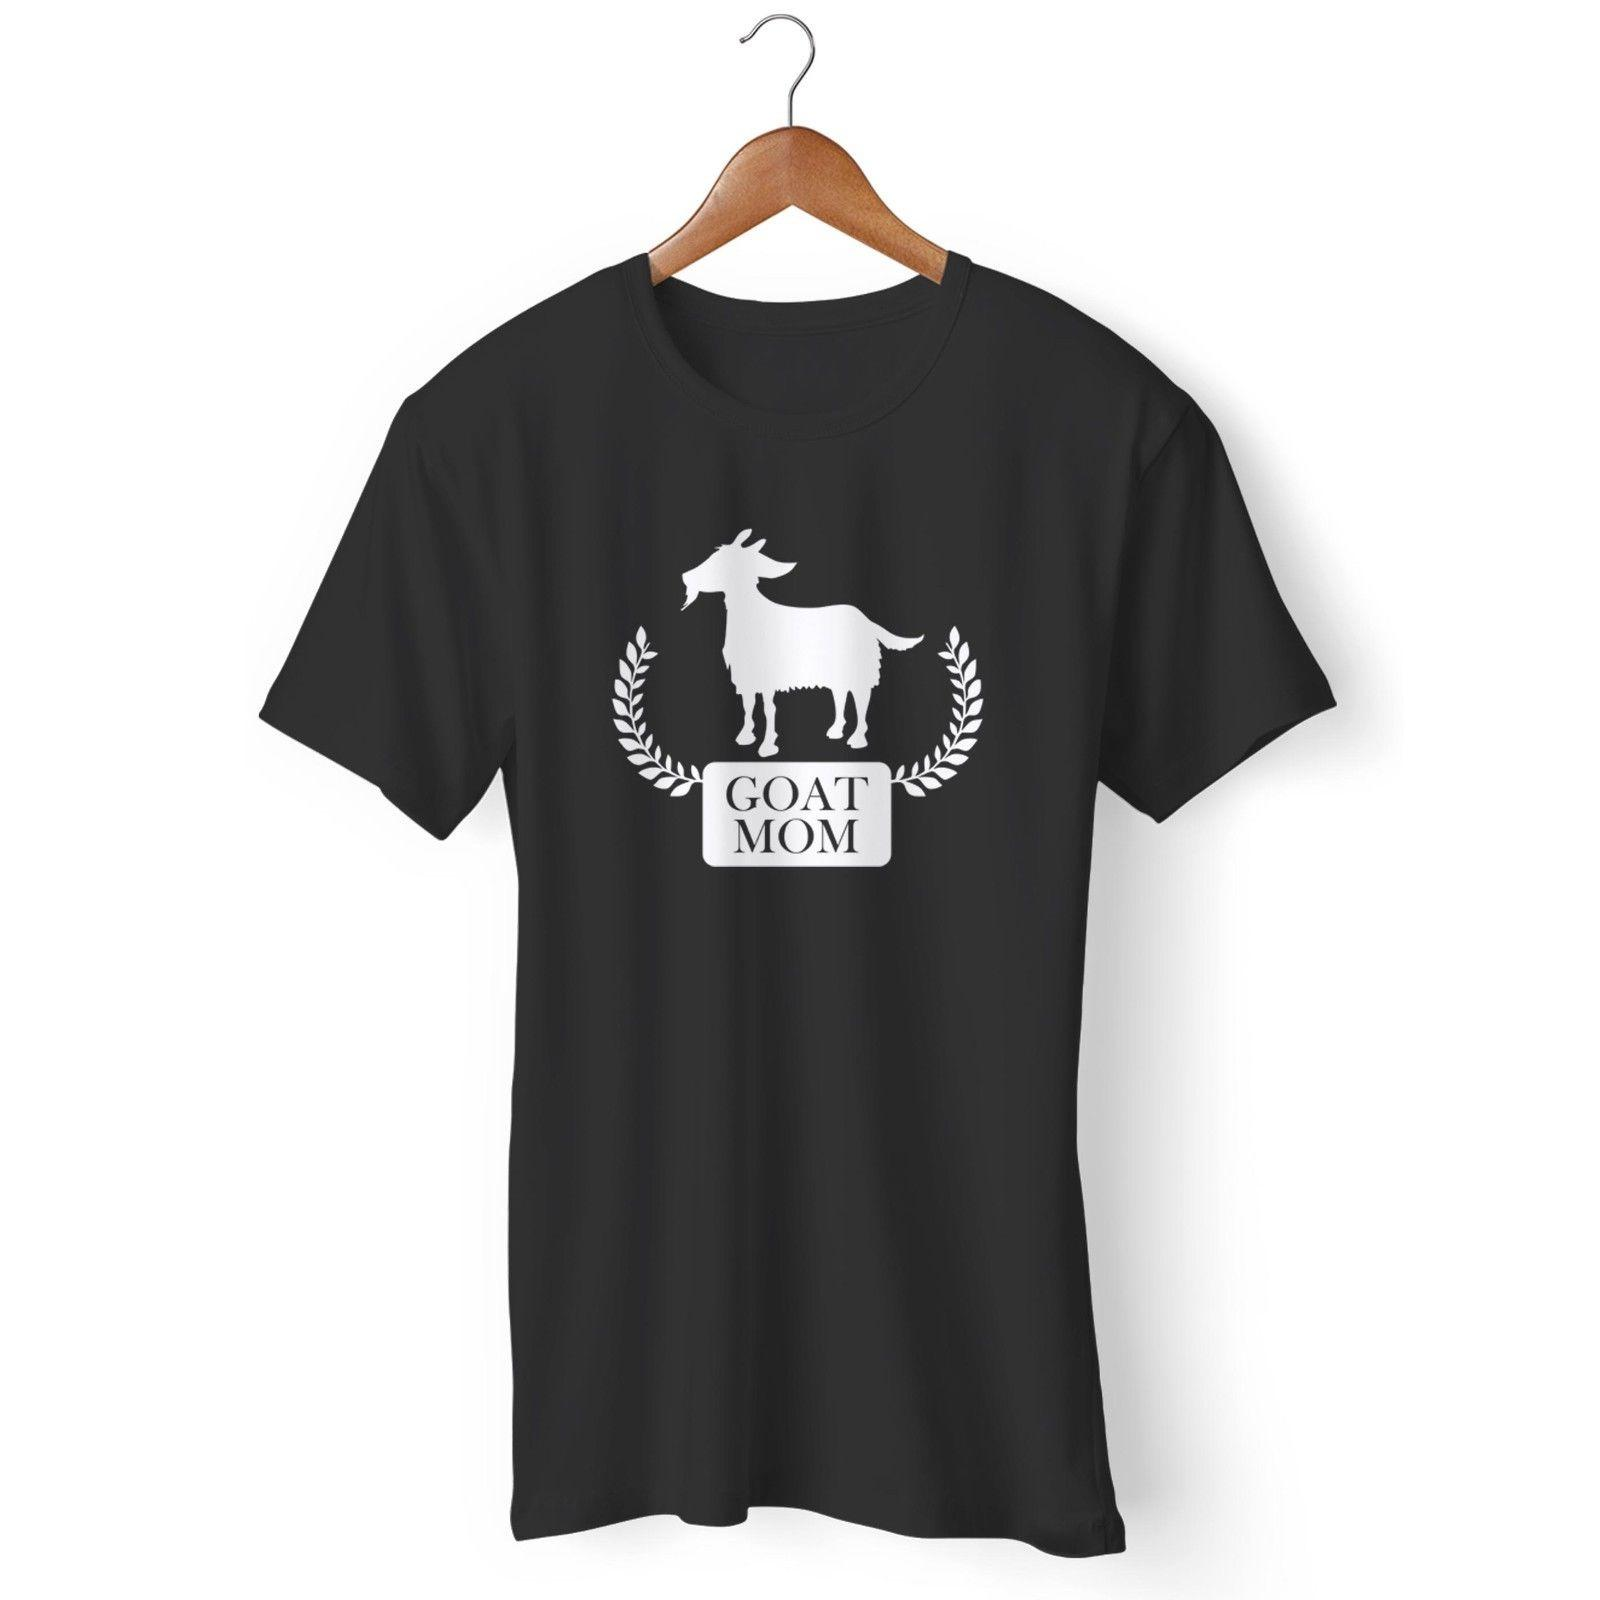 4c055d69 Goat Mom FUN Crazy Goat Tee Goat Lovers Man's / Woman's T-Shirt Funny free  shipping Unisex Casual tee gift